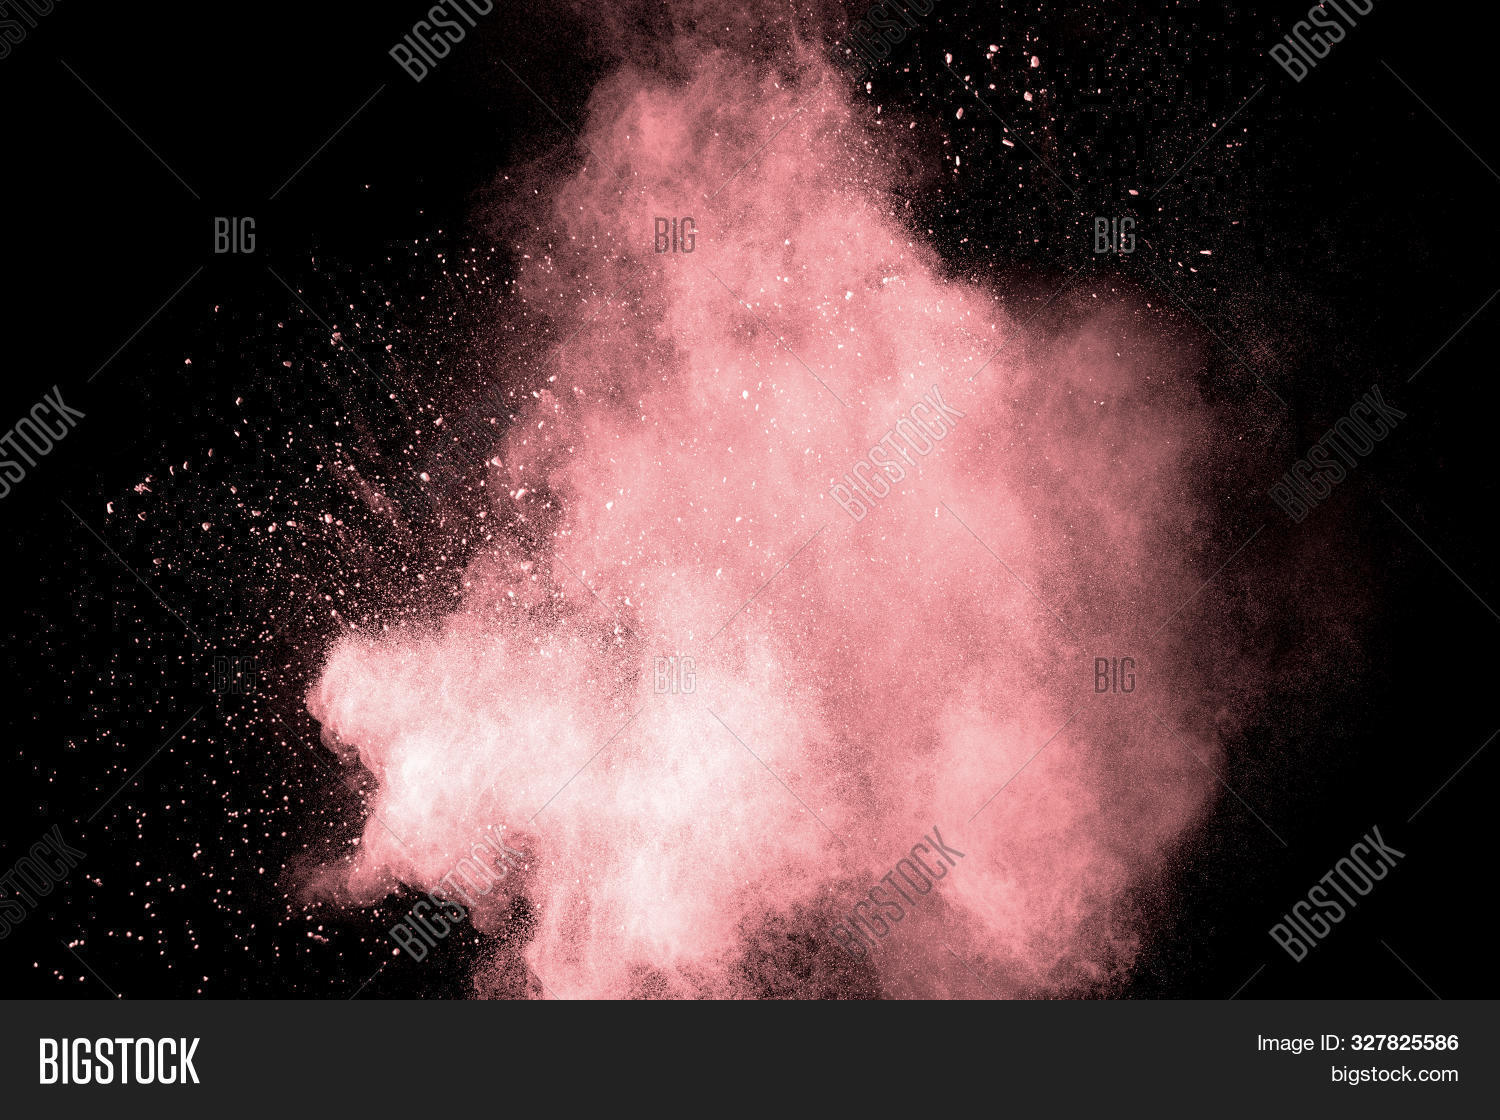 Abstract pink powder explosion on black background. Freeze motion of light pink dust splashing.